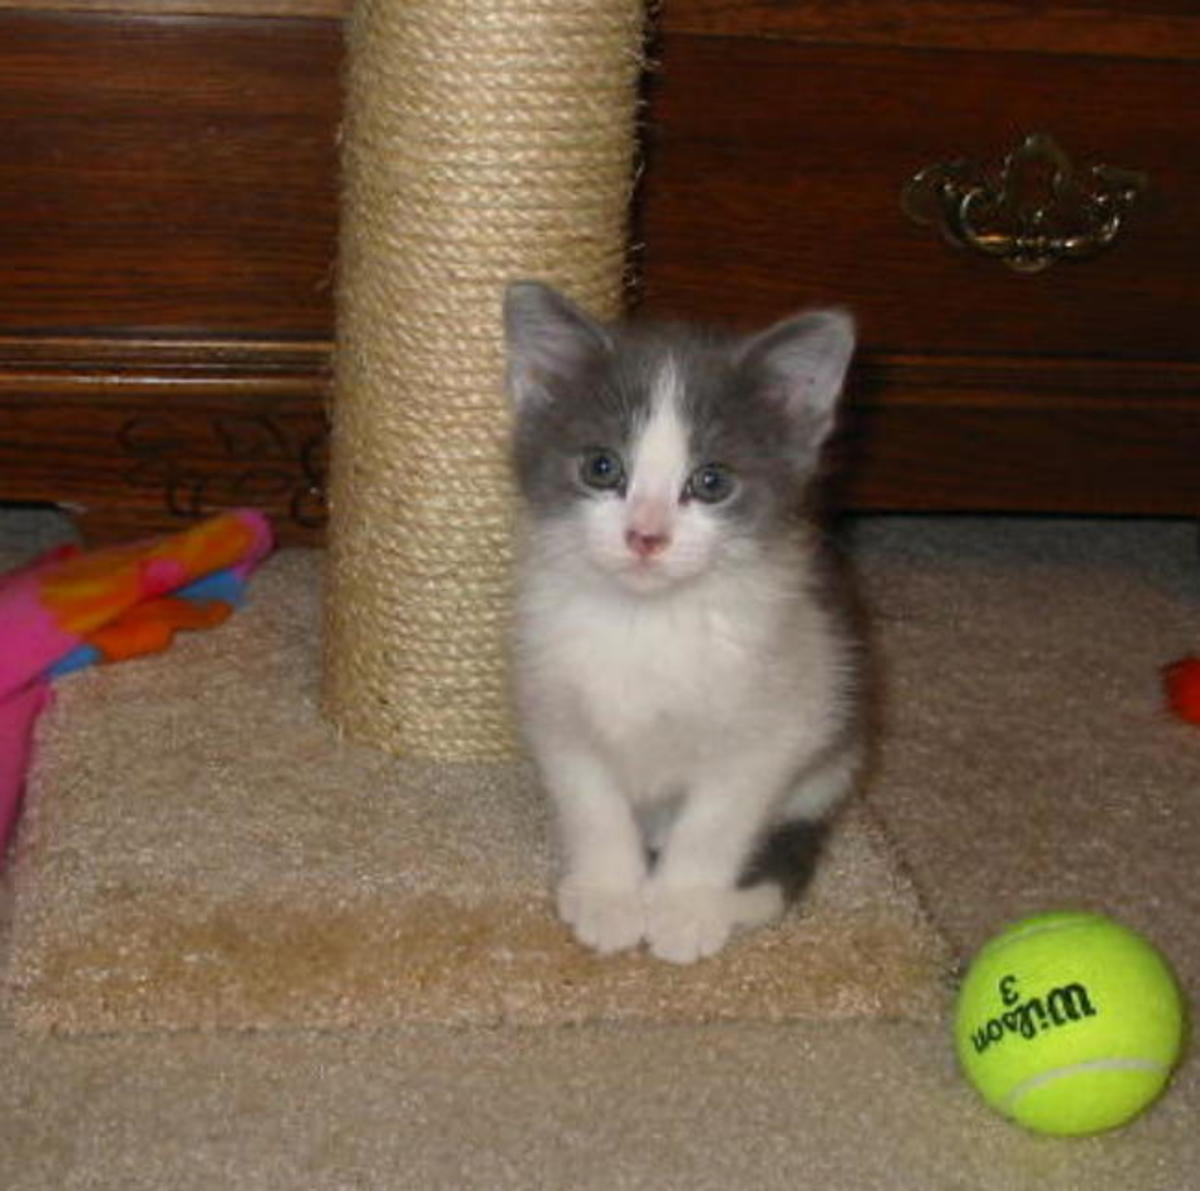 Dixie as a little kitten... as she grew, her nose turned almost completely black instead of pink.